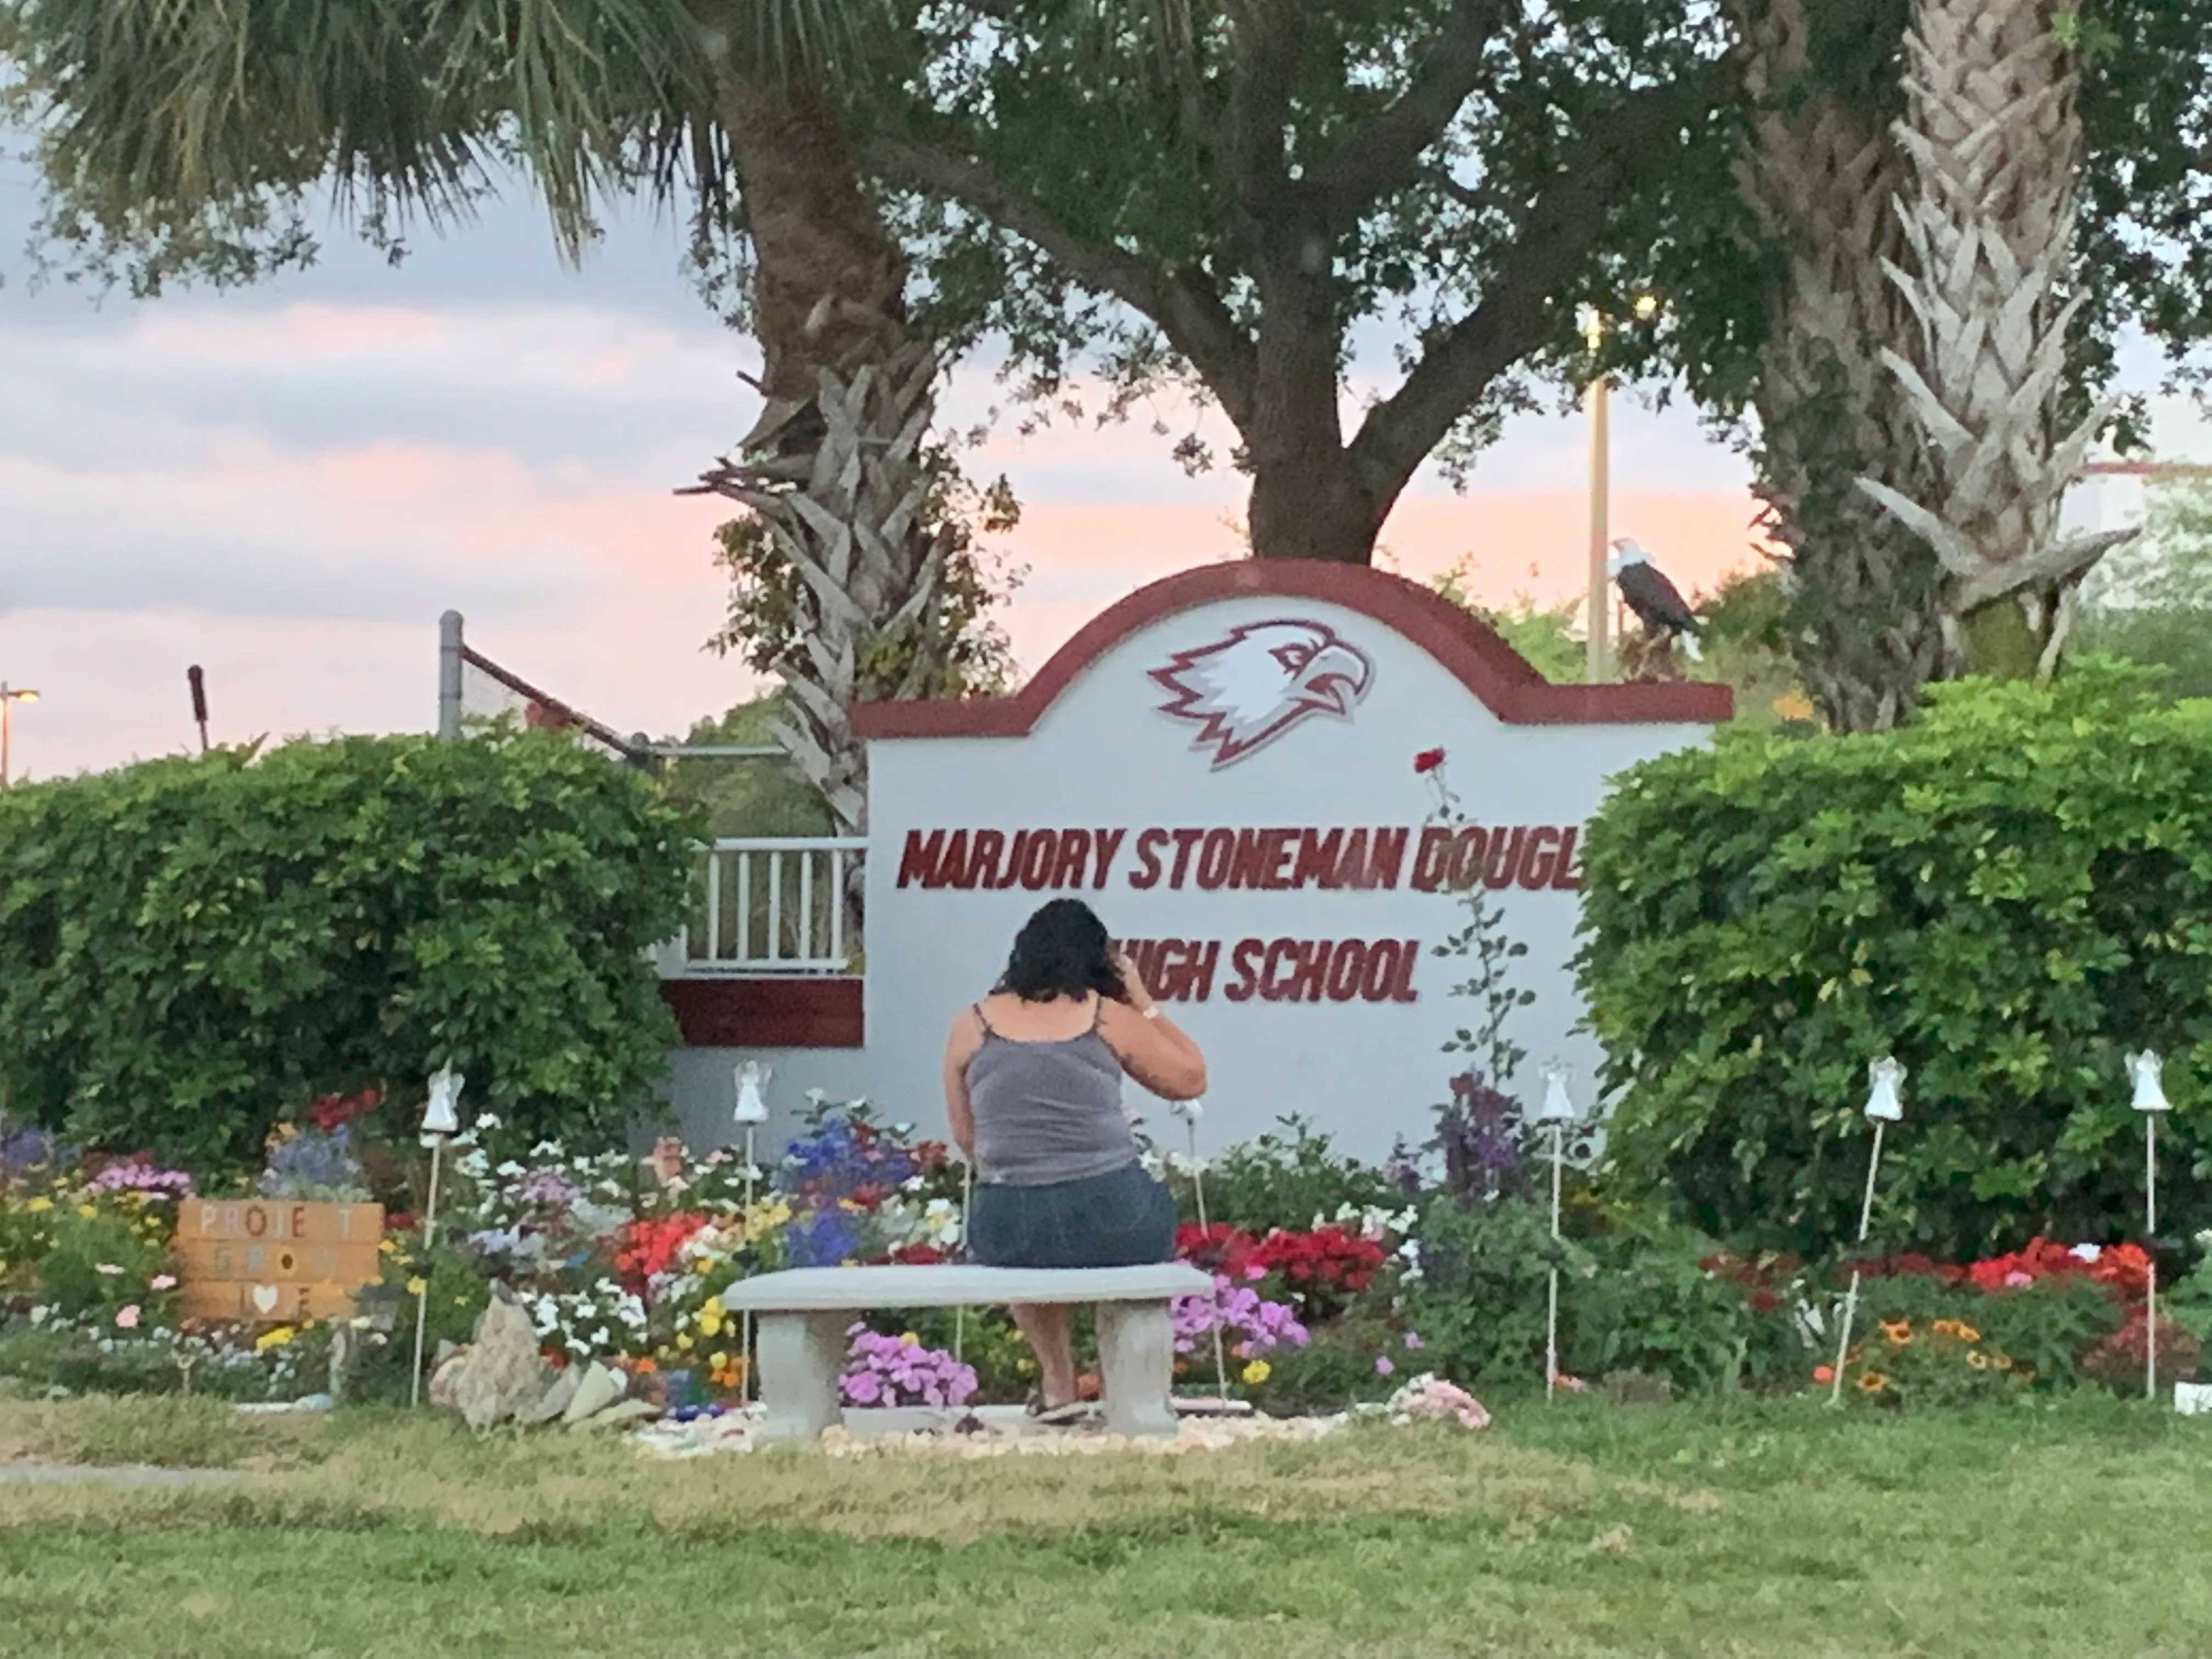 Following the 2018 shooting at Marjory Stoneman Douglas High School in Parkland, Florida, voters approved allocating $93 million a year for four years to pay for teacher salaries, school security and behavioral health providers. Florida tacked on another $69 million to fund school-based mental health services throughout the state.